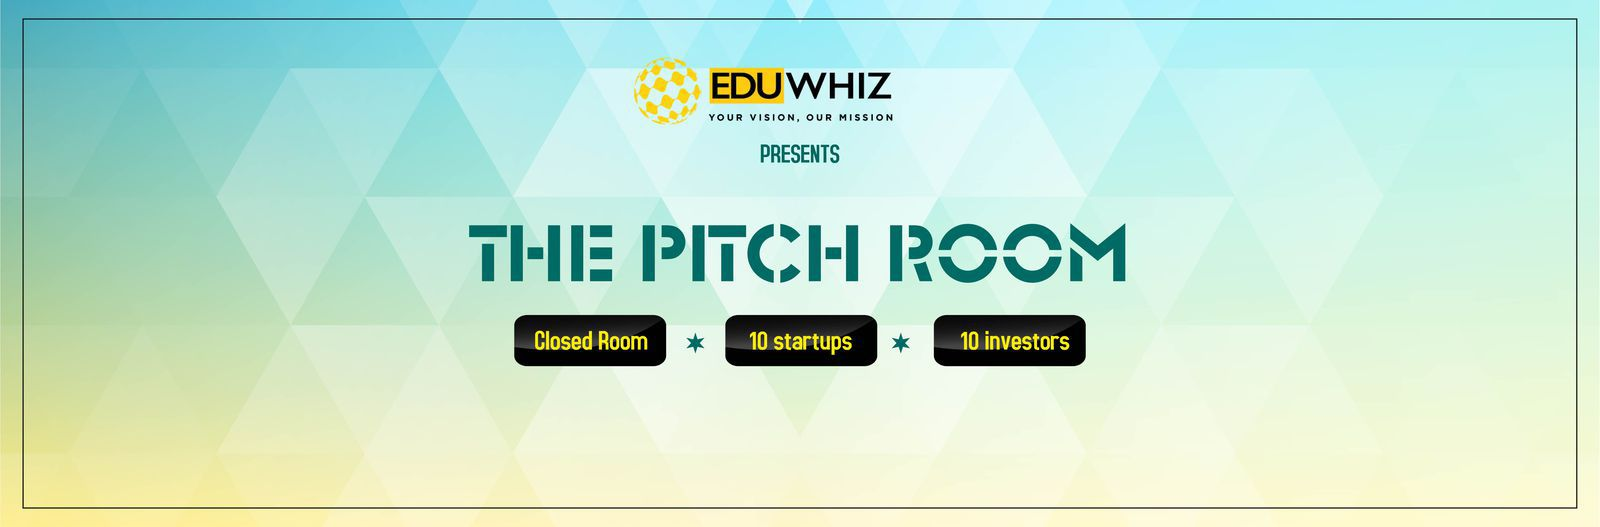 1491390405the-pitch-room_1366x450_020217